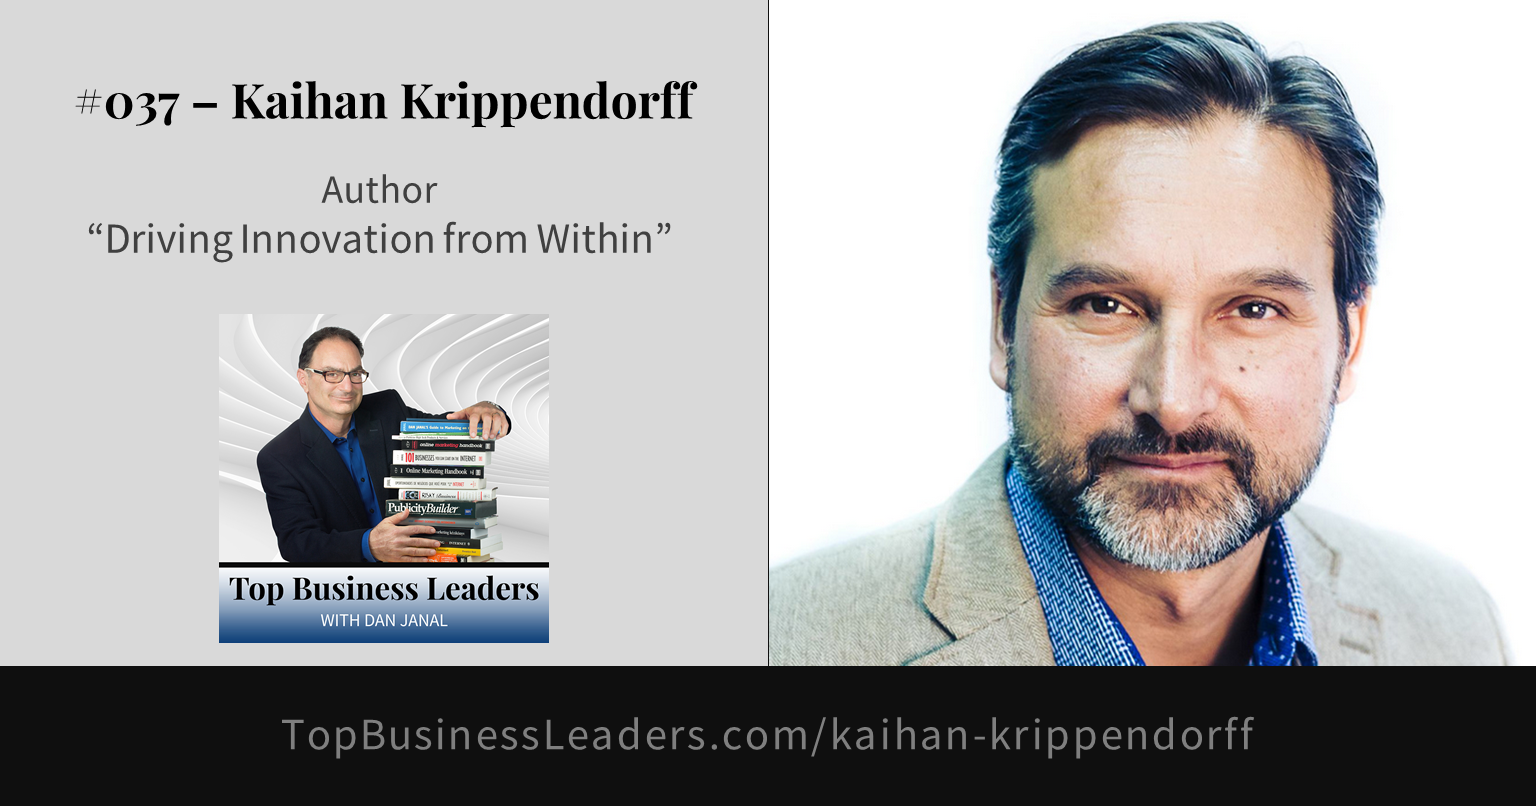 kaihan-krippendorff-author-driving-innovation-from-within